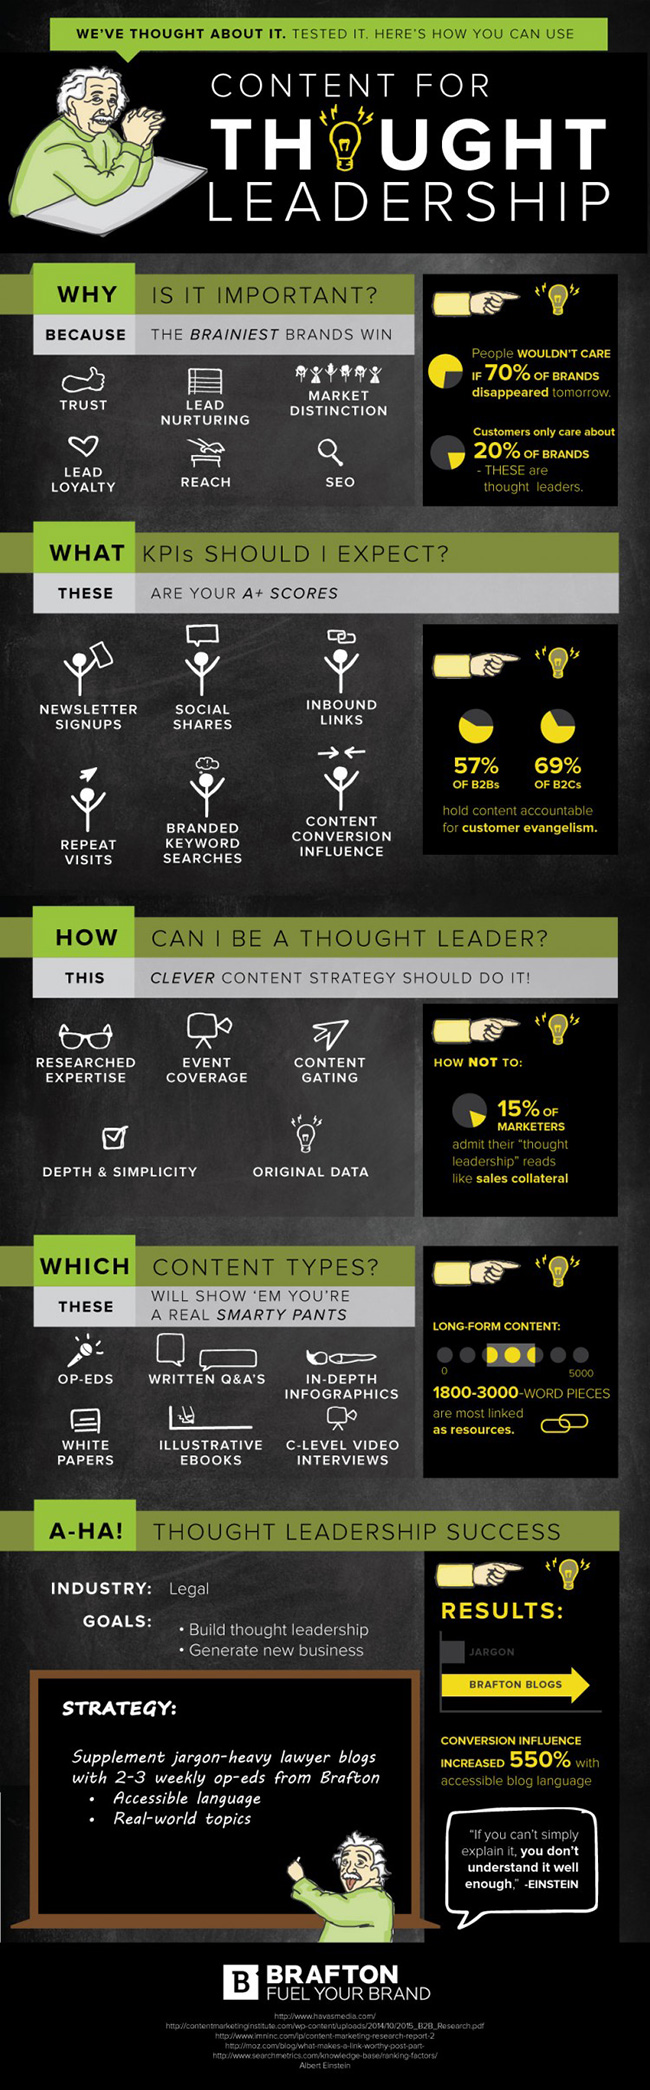 How to use content for thought leadership